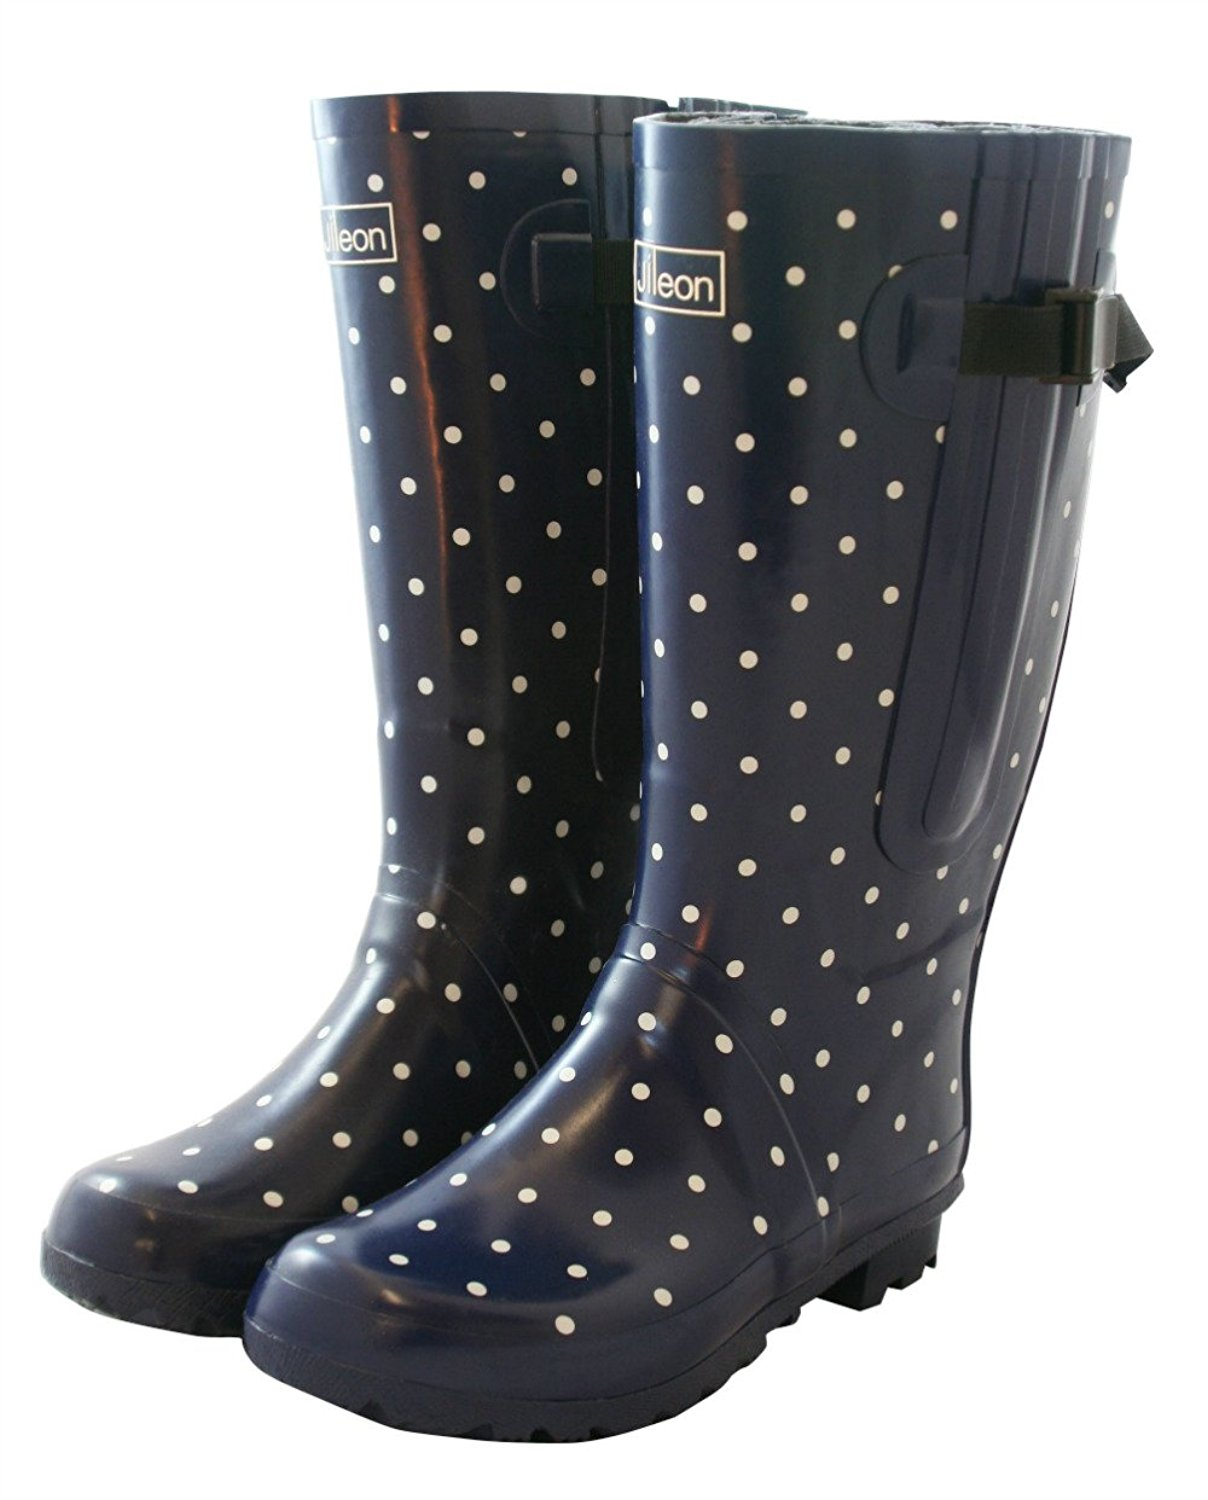 31e53fcb914e Get Quotations · Jileon Extra Wide Calf Rubber Rain Boots for Women-Widest  Fit Boots in The US